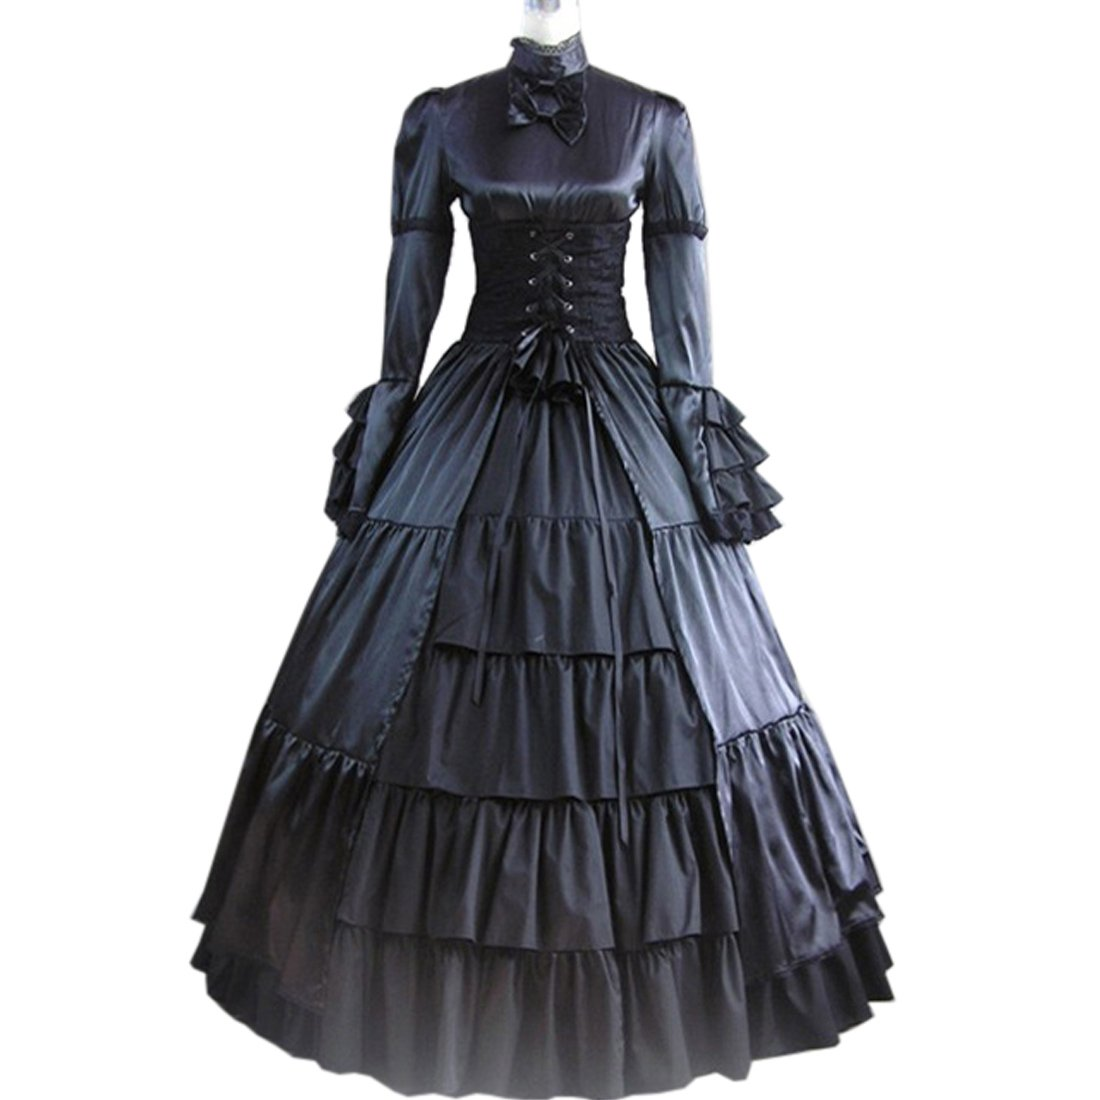 Fancy Dress Store Partiss Women Bowknot Stand Collar Gothic Victorian Dress Costumes M,Black by Fancy Dress Store (Image #2)